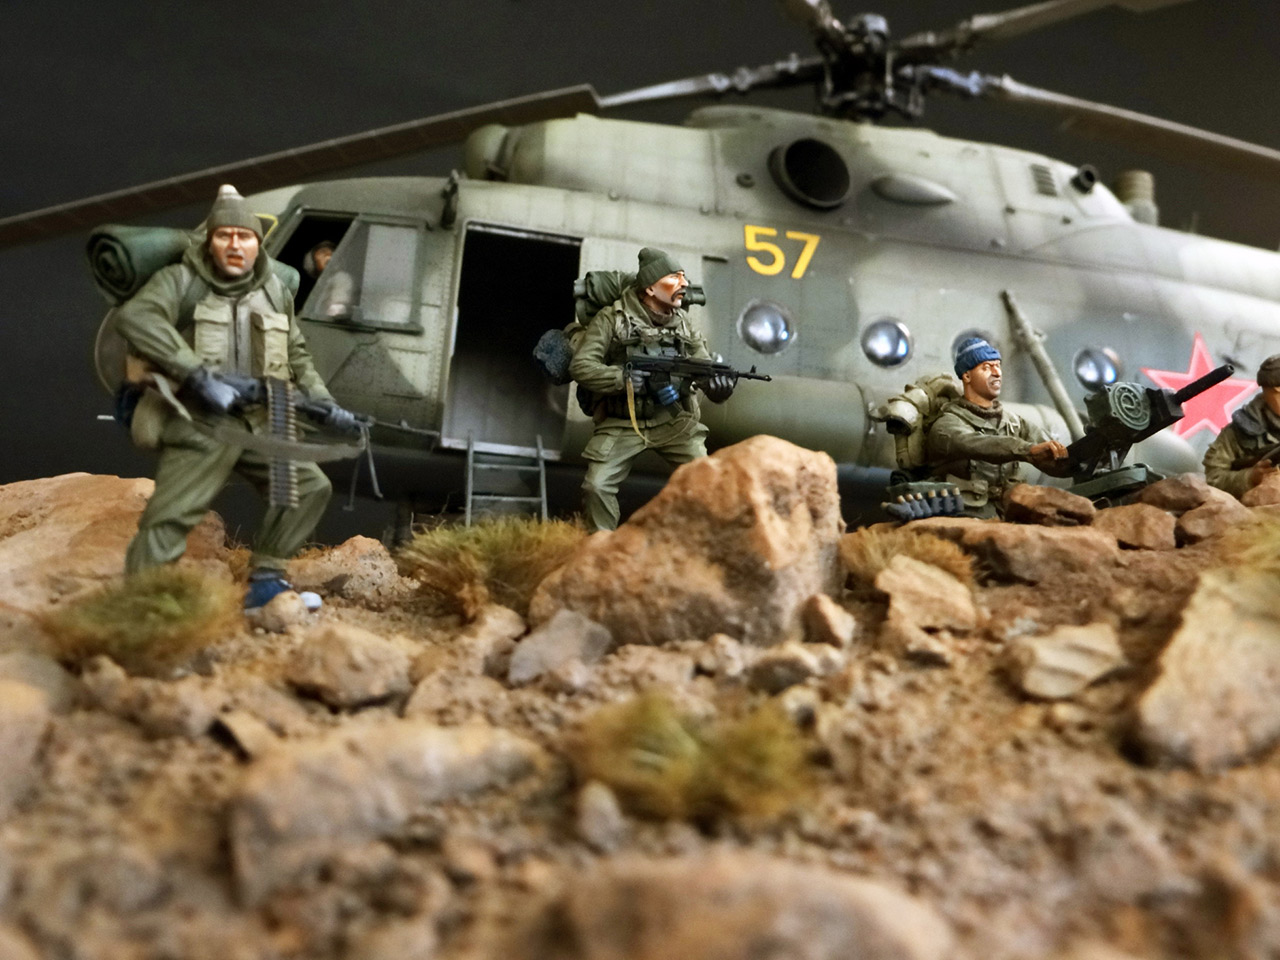 Dioramas and Vignettes: GRU special forces in Afghanistan, photo #7